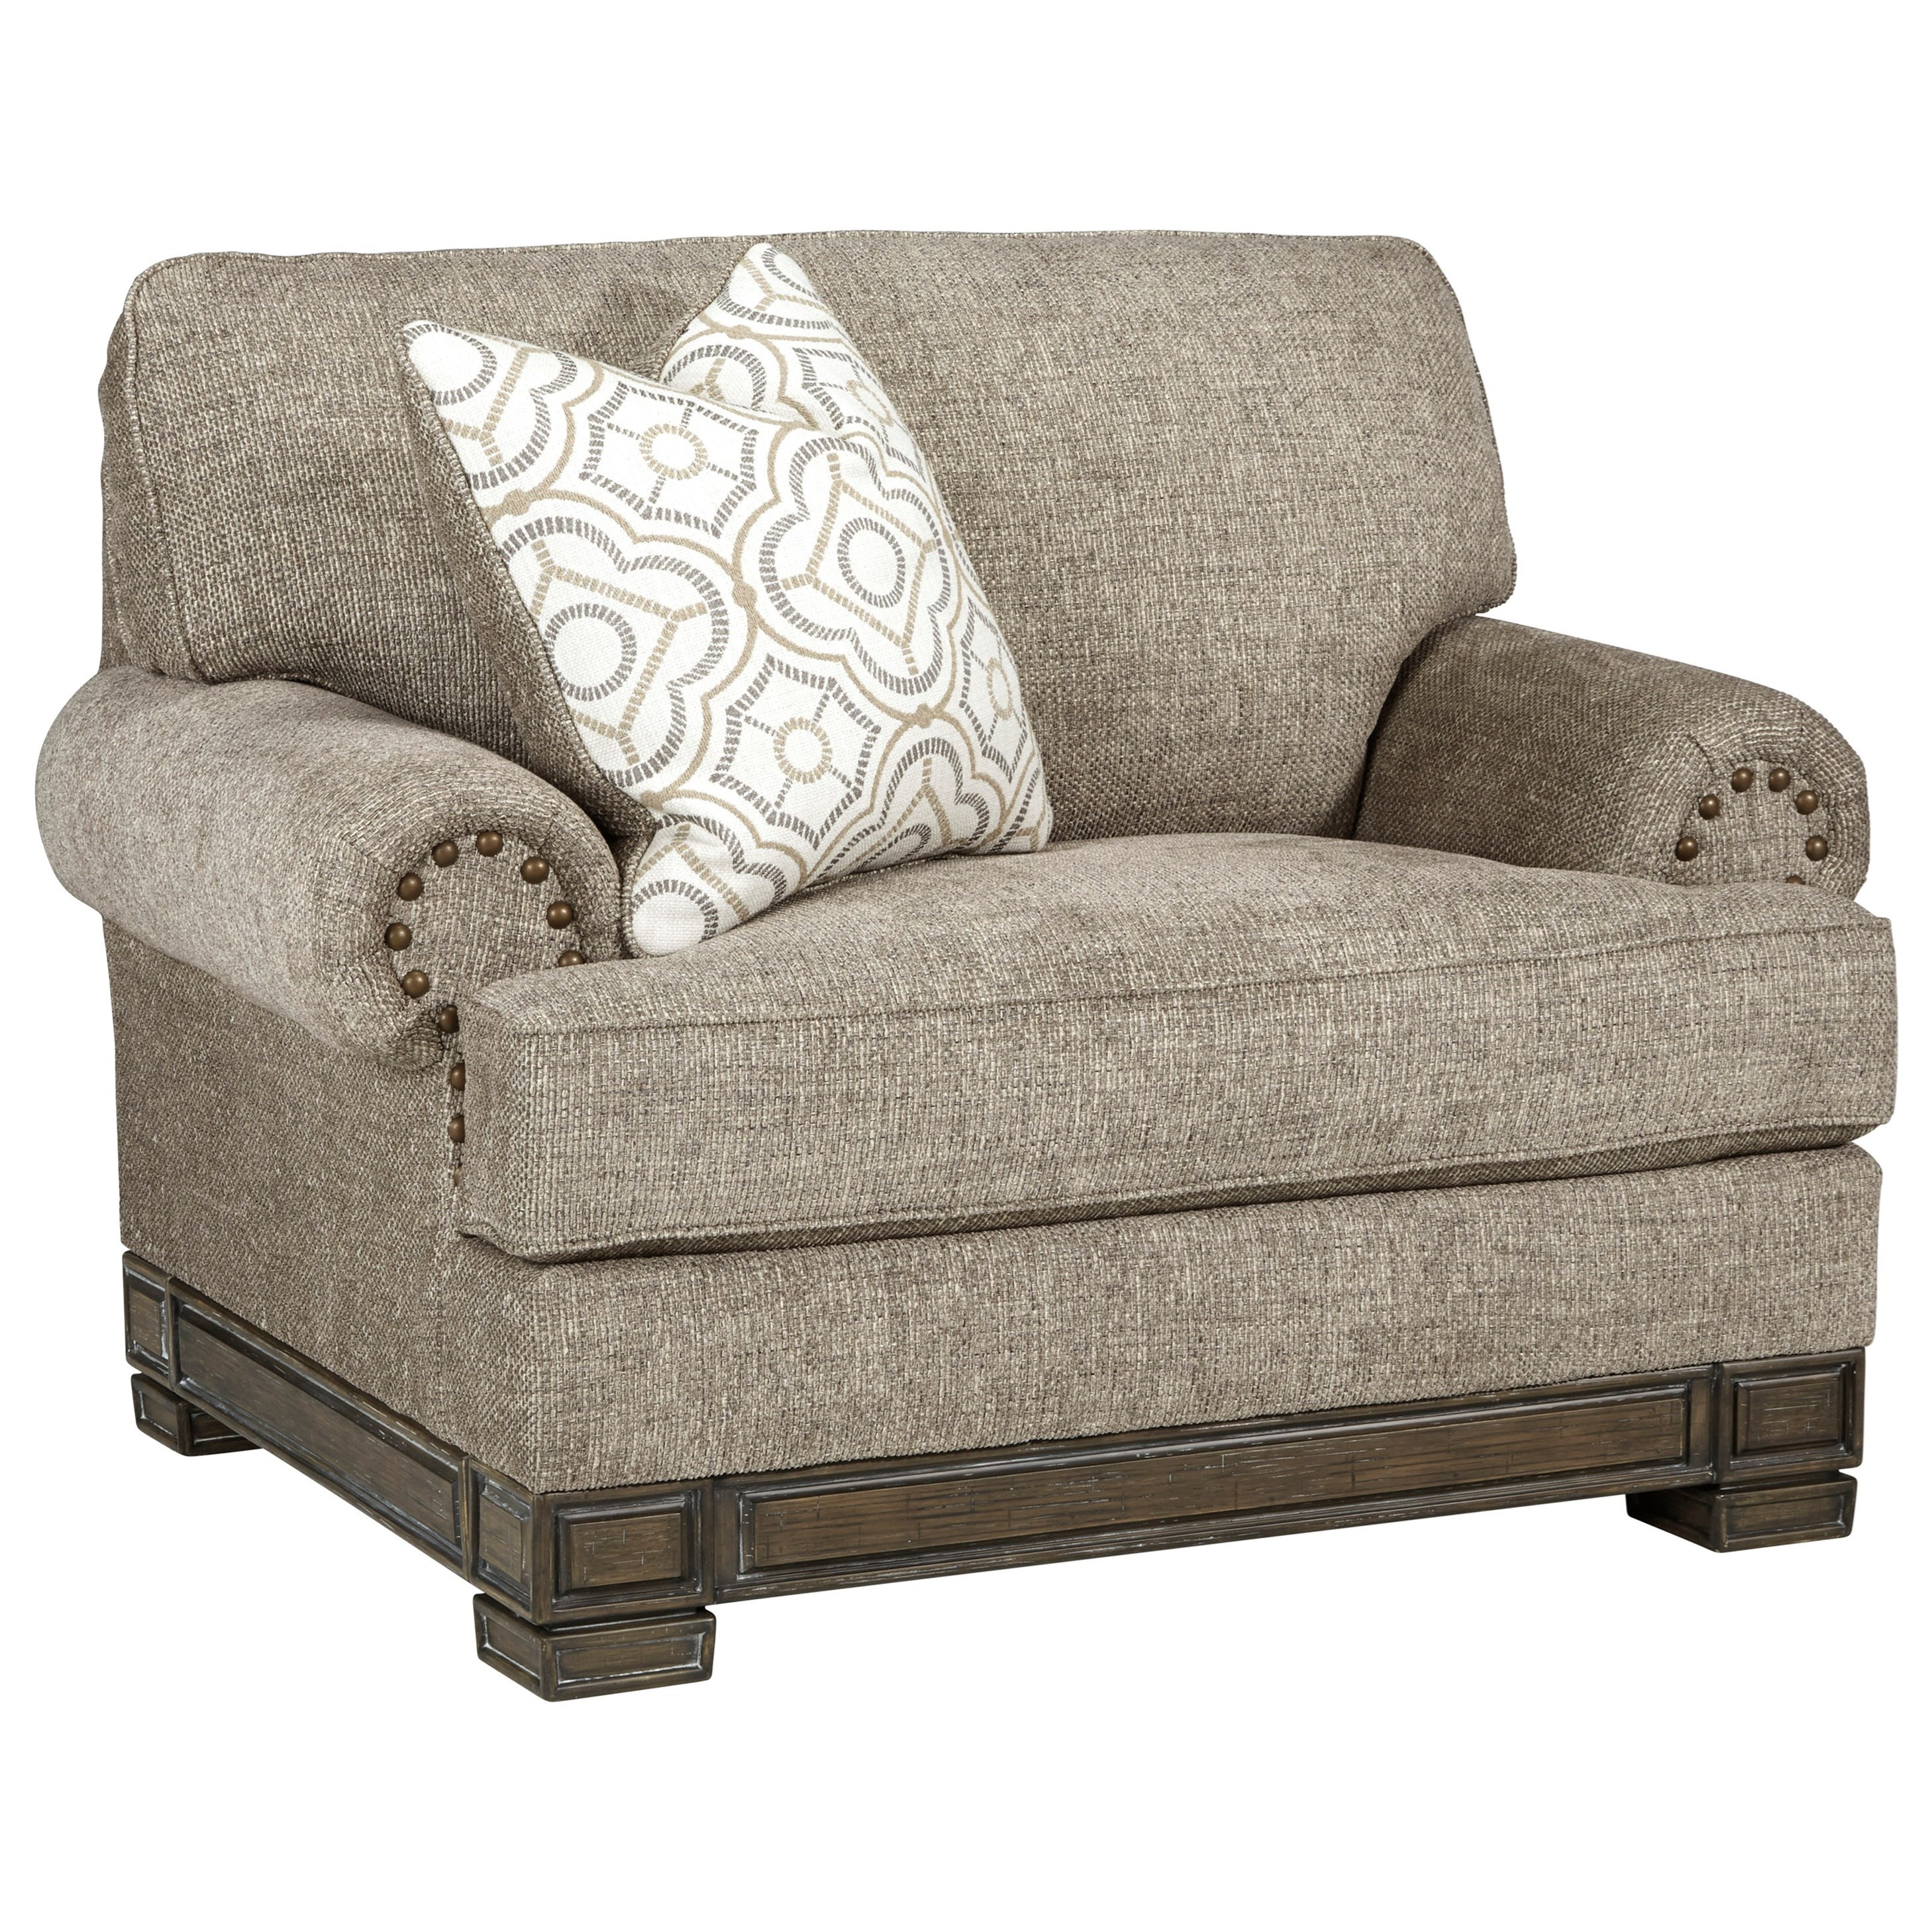 Einsgrove Chair and a Half by Ashley (Signature Design) at Johnny Janosik